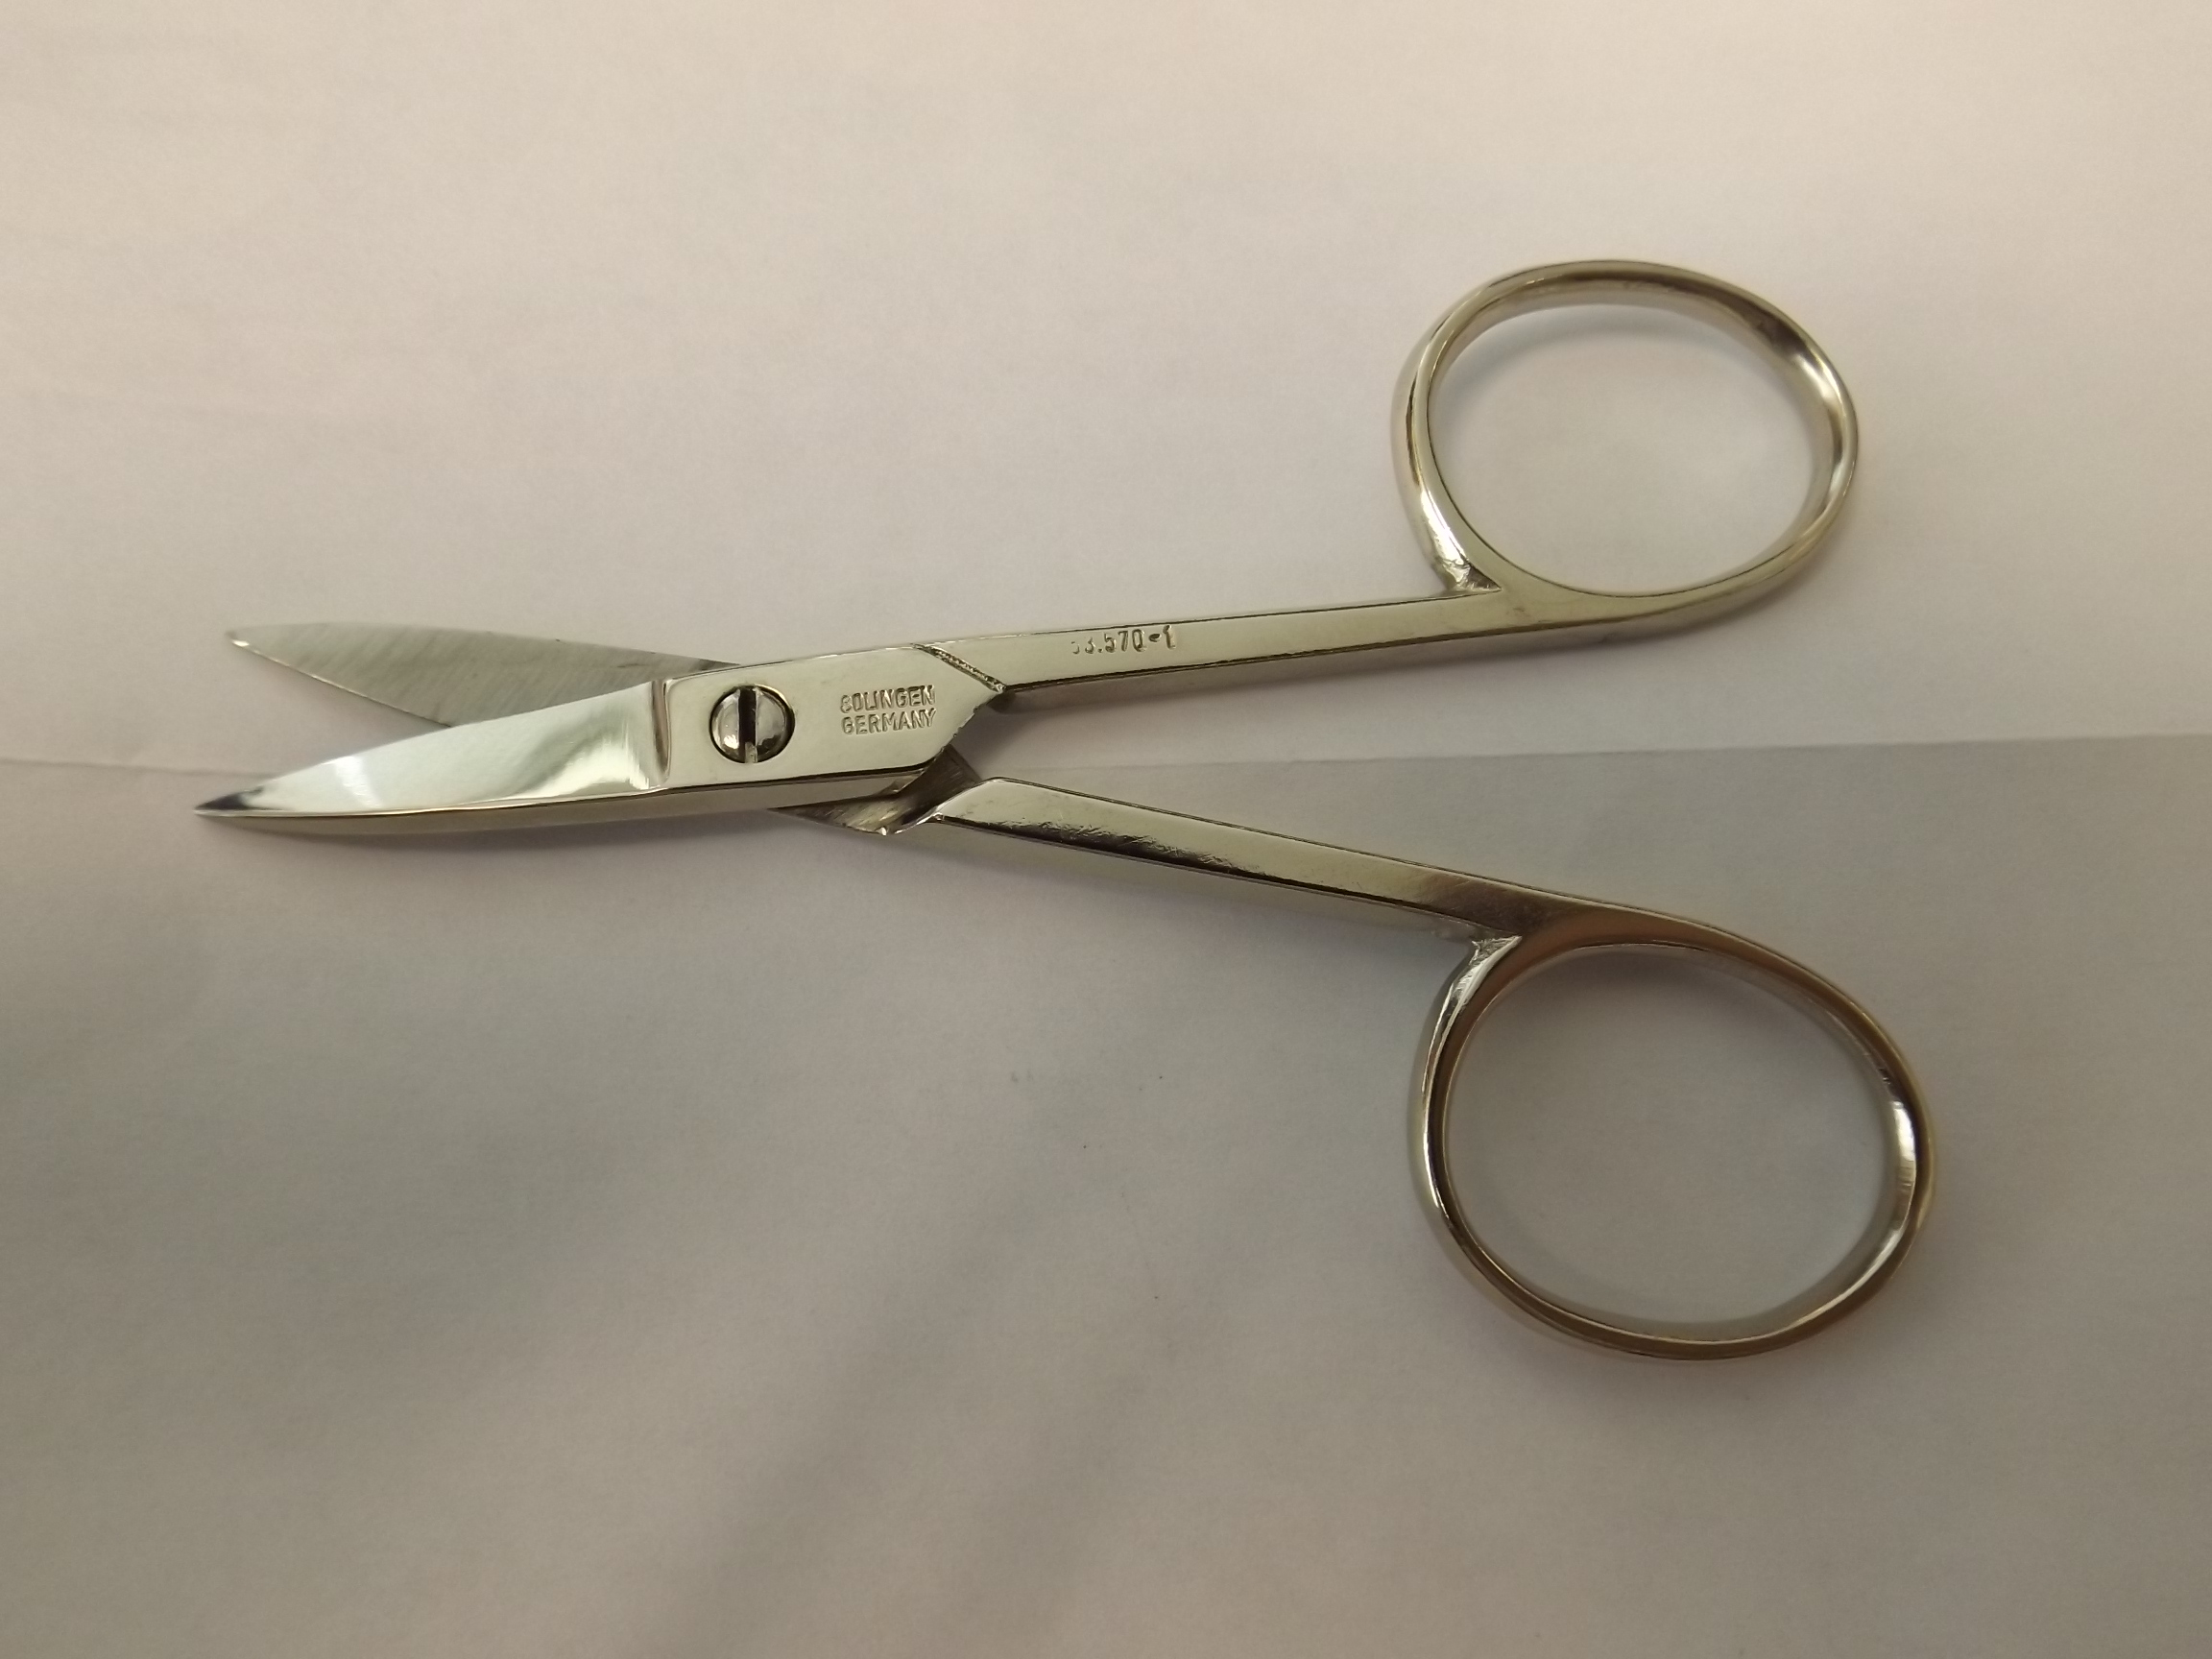 SH945 Wide Blade Scissors--Carbon Steel Discontinued item- Grobet 53.570-1